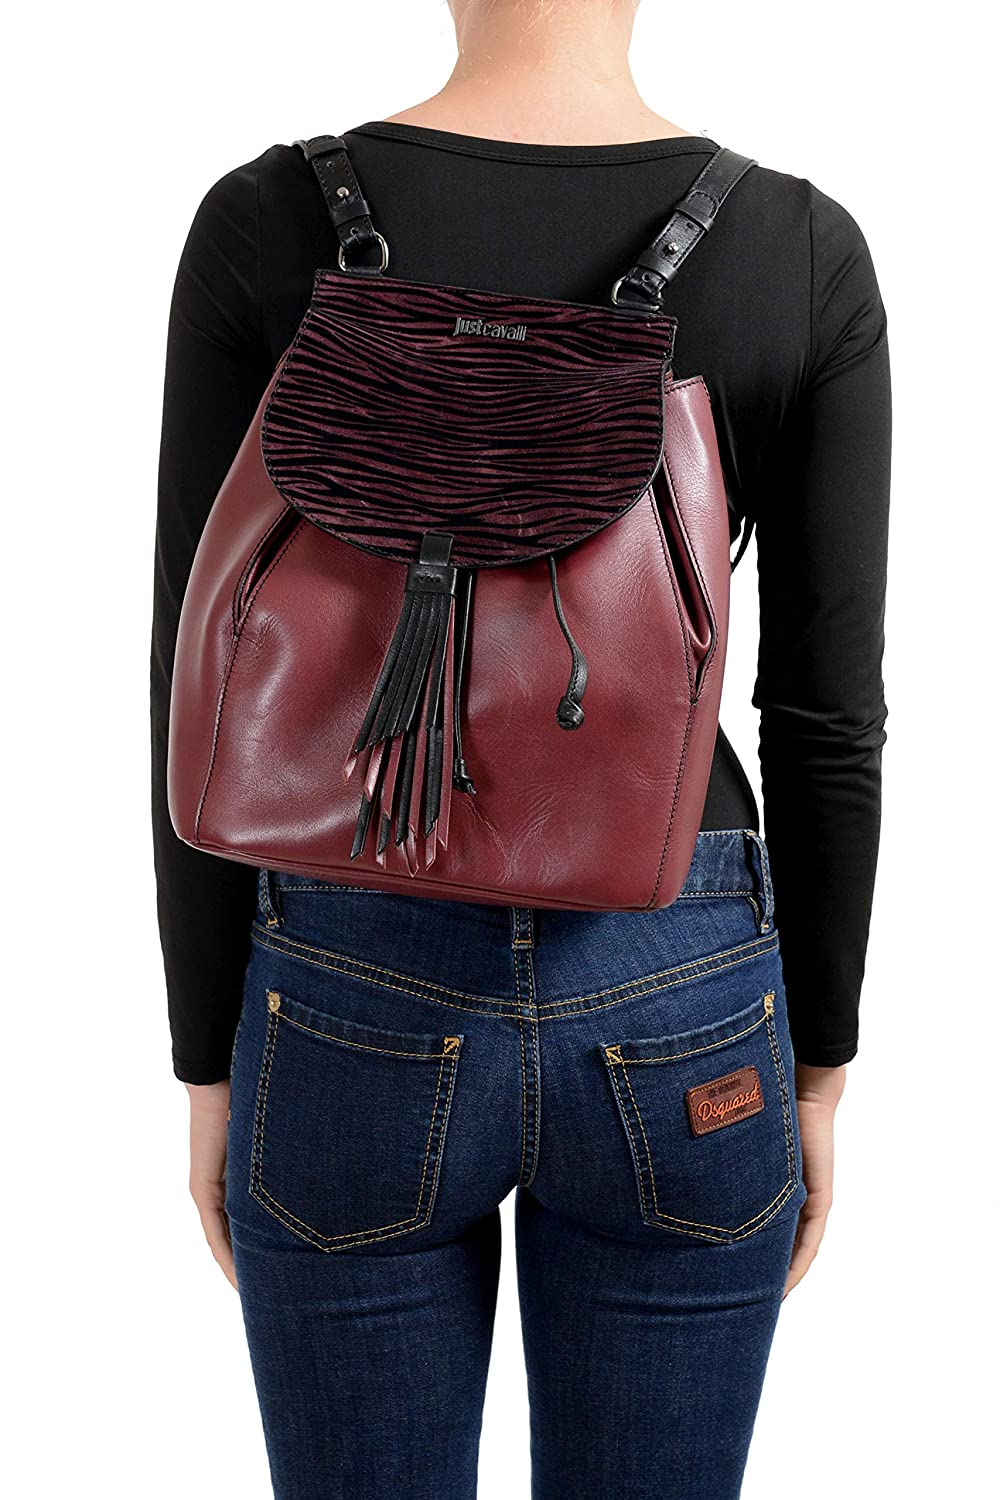 Just Cavalli 100/% Leather Multi-Color Womens Backpack